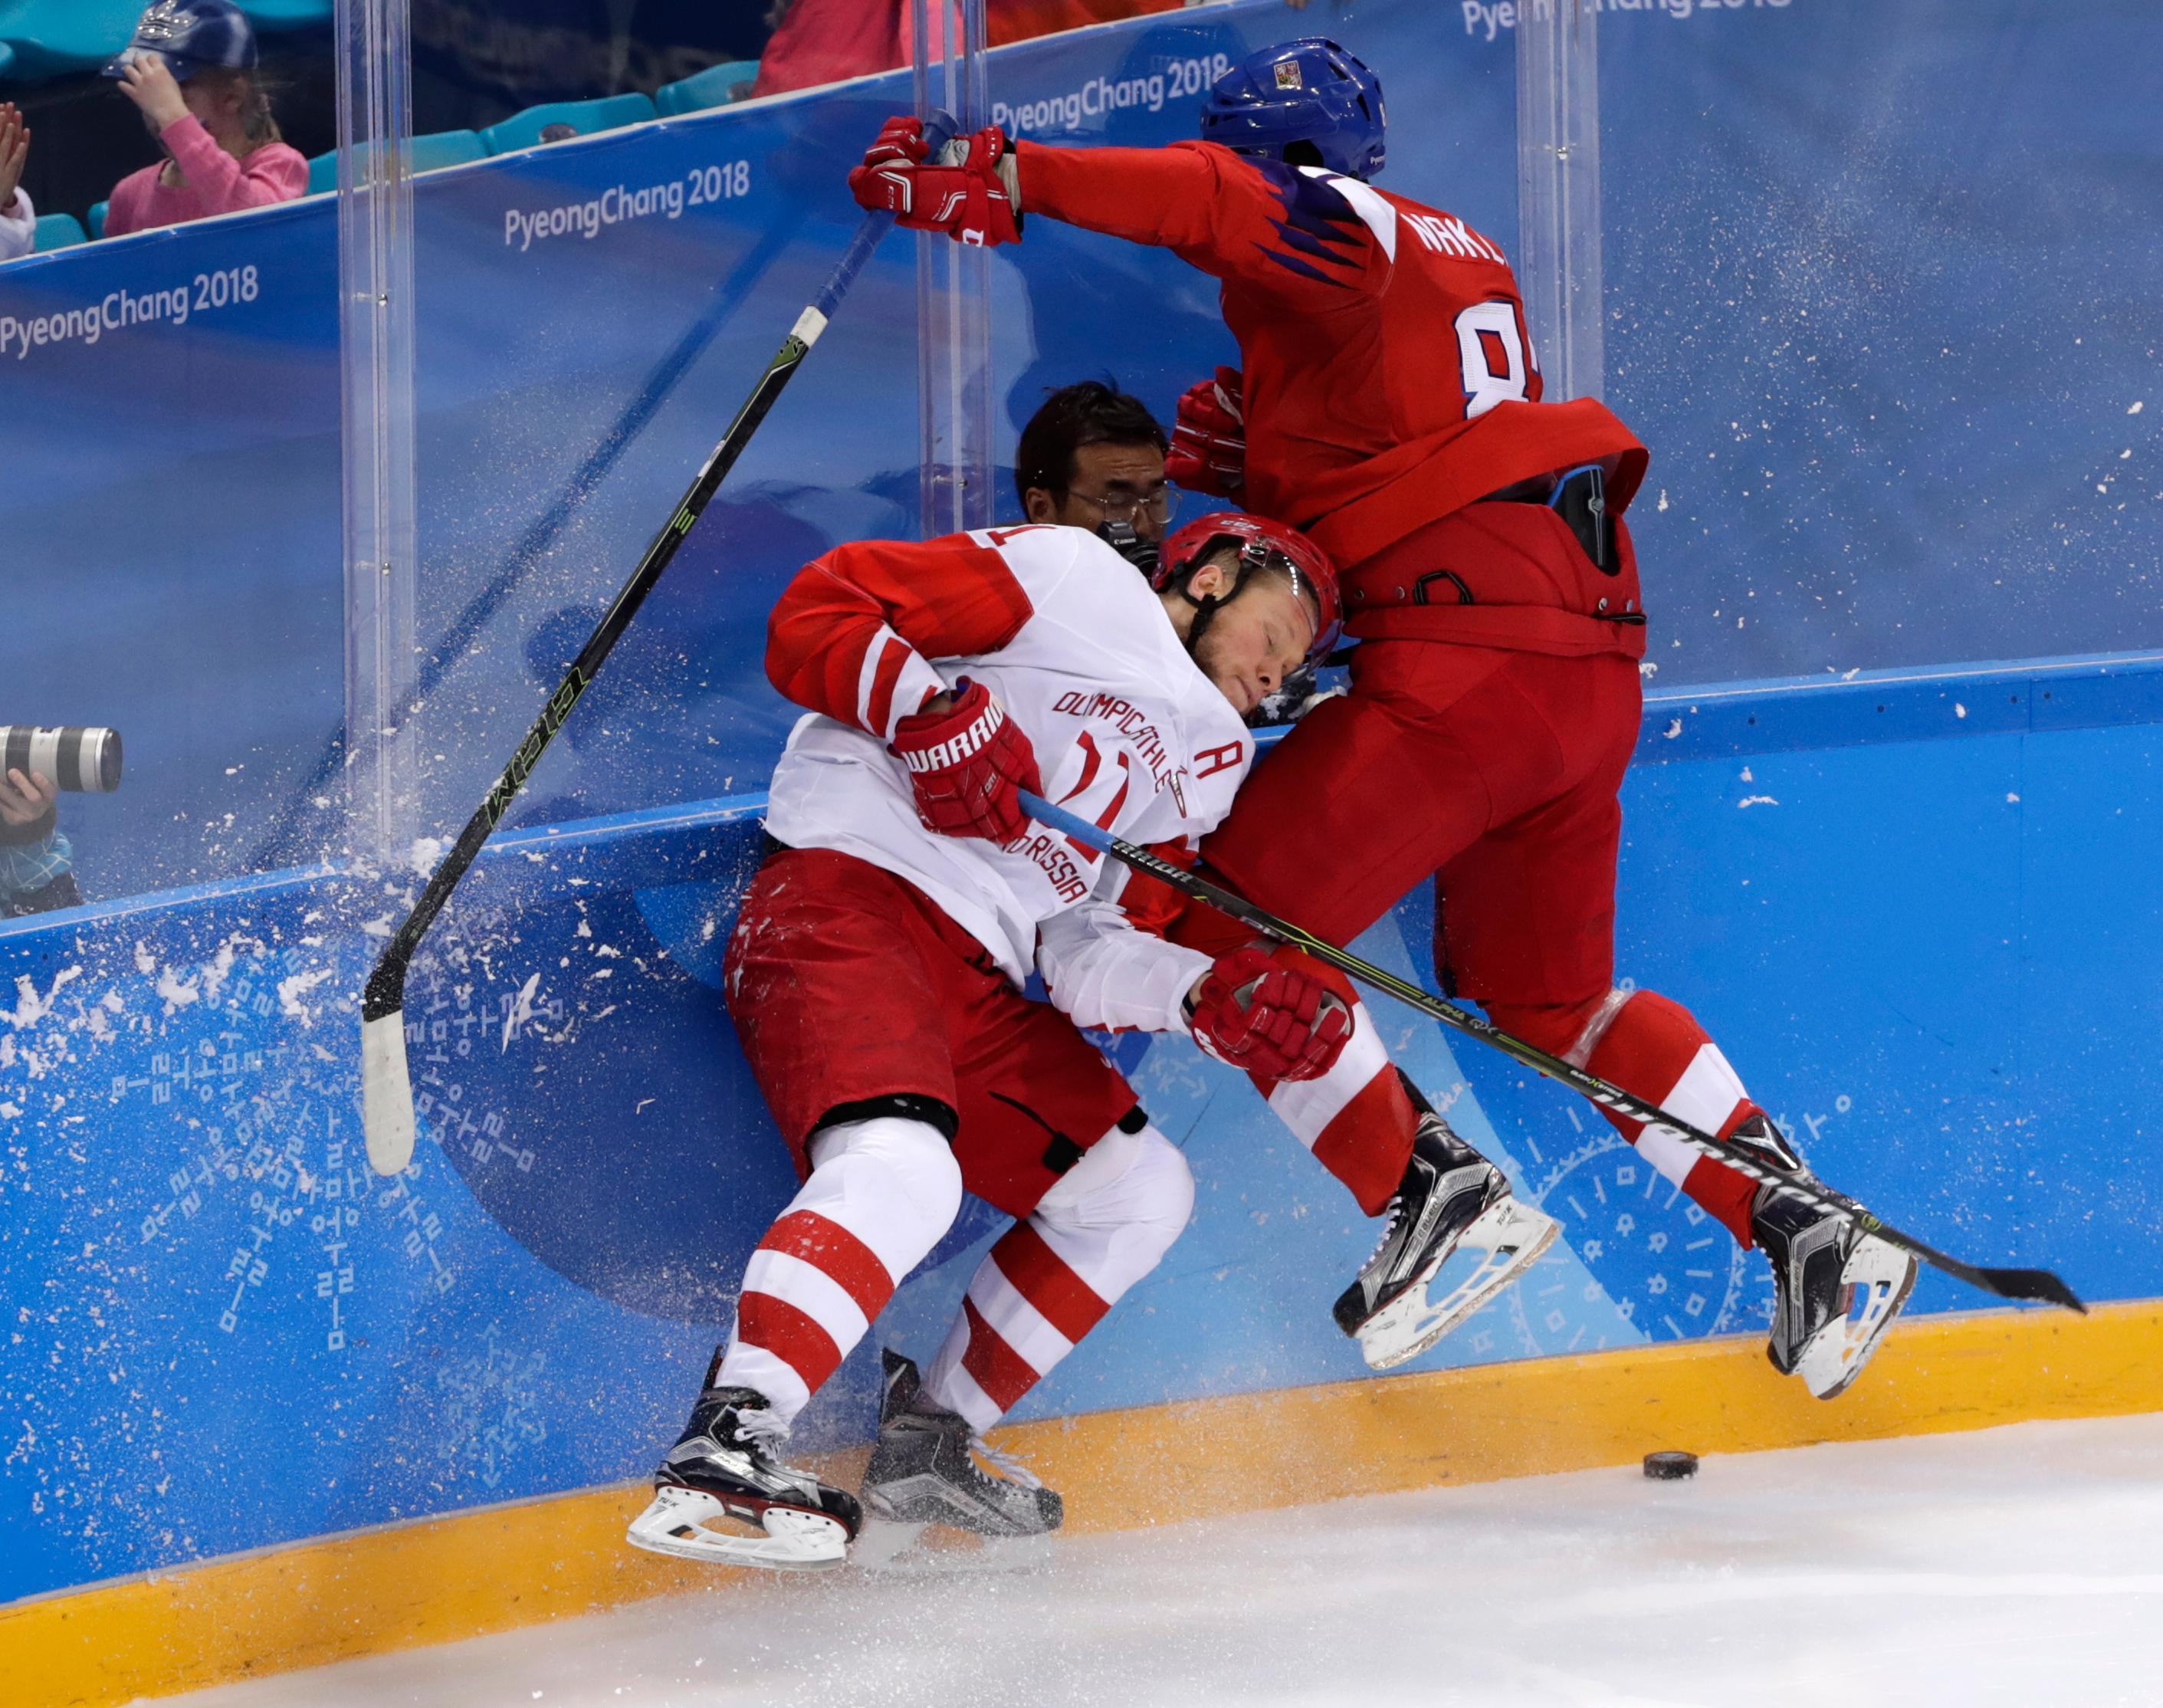 Russian athlete Sergei Andronov (11) and Jakub Nakladal (87), of the Czech Republic, collide during the second period of the semifinal round of the men's hockey game at the 2018 Winter Olympics in Gangneung, South Korea, Friday, Feb. 23, 2018. (AP Photo/Frank Franklin II)